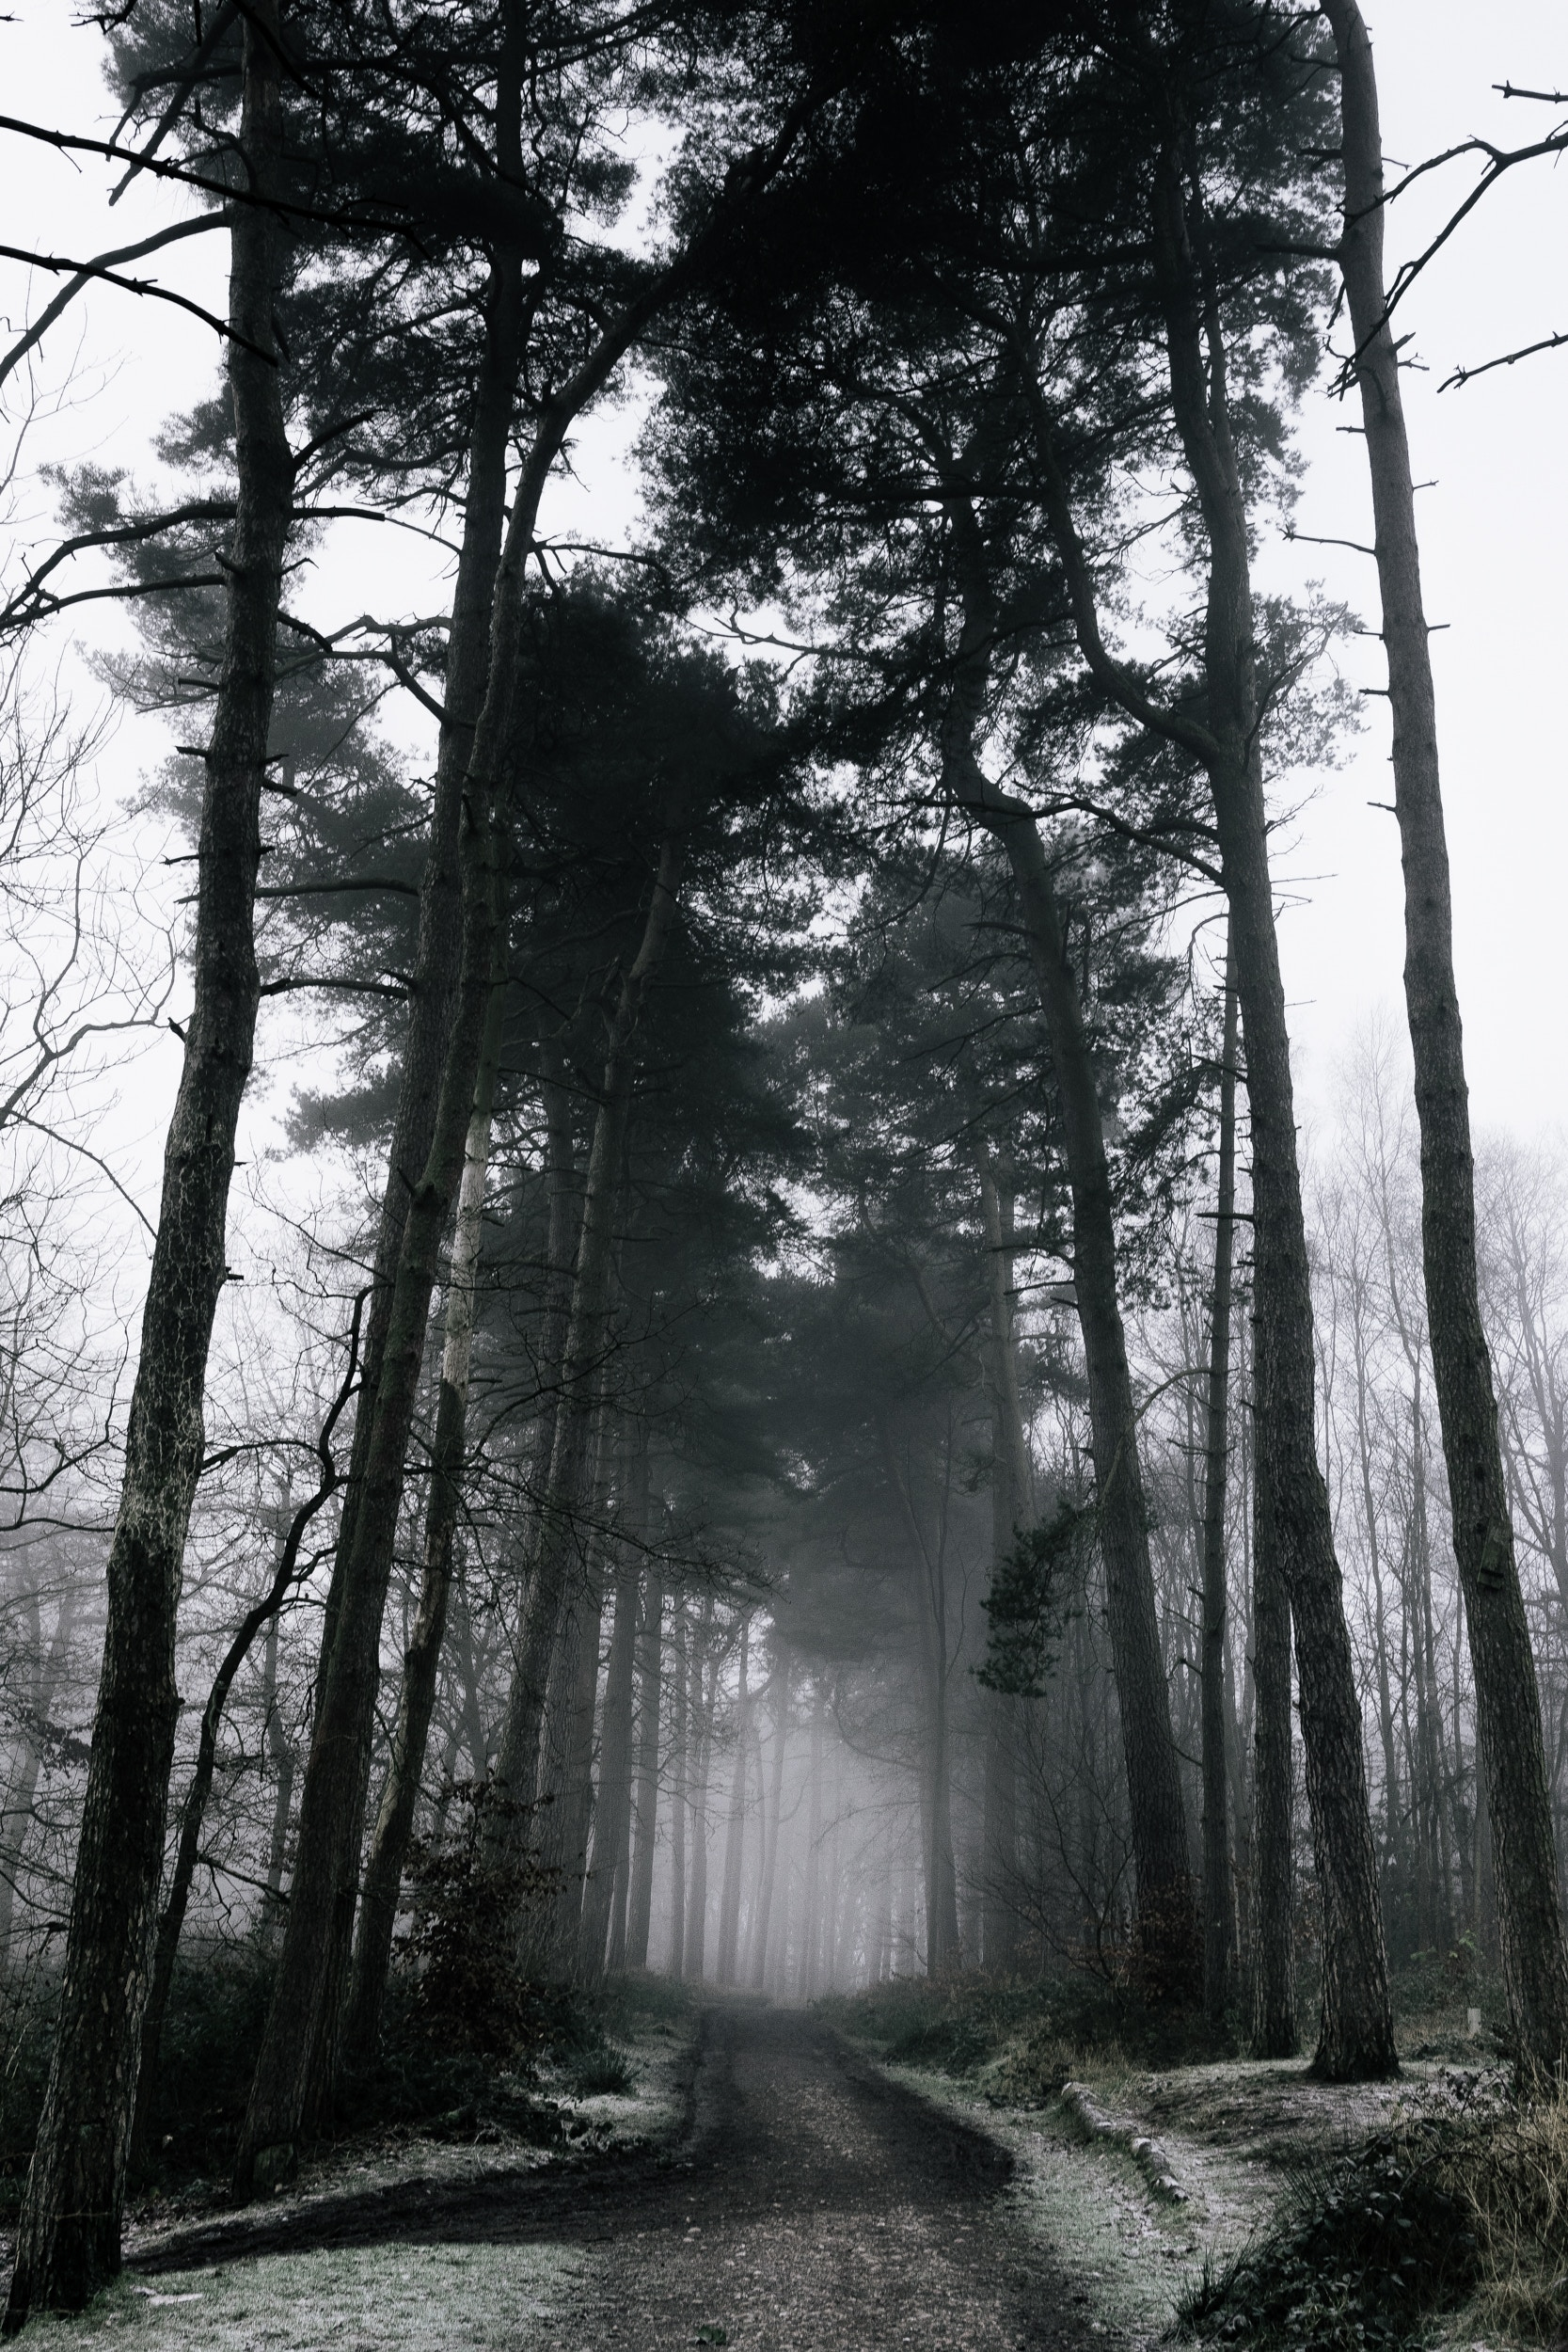 153606 download wallpaper Winter, Nature, Trees, Snow, Forest, Fog, Branches, Gloomy, Gloomily screensavers and pictures for free